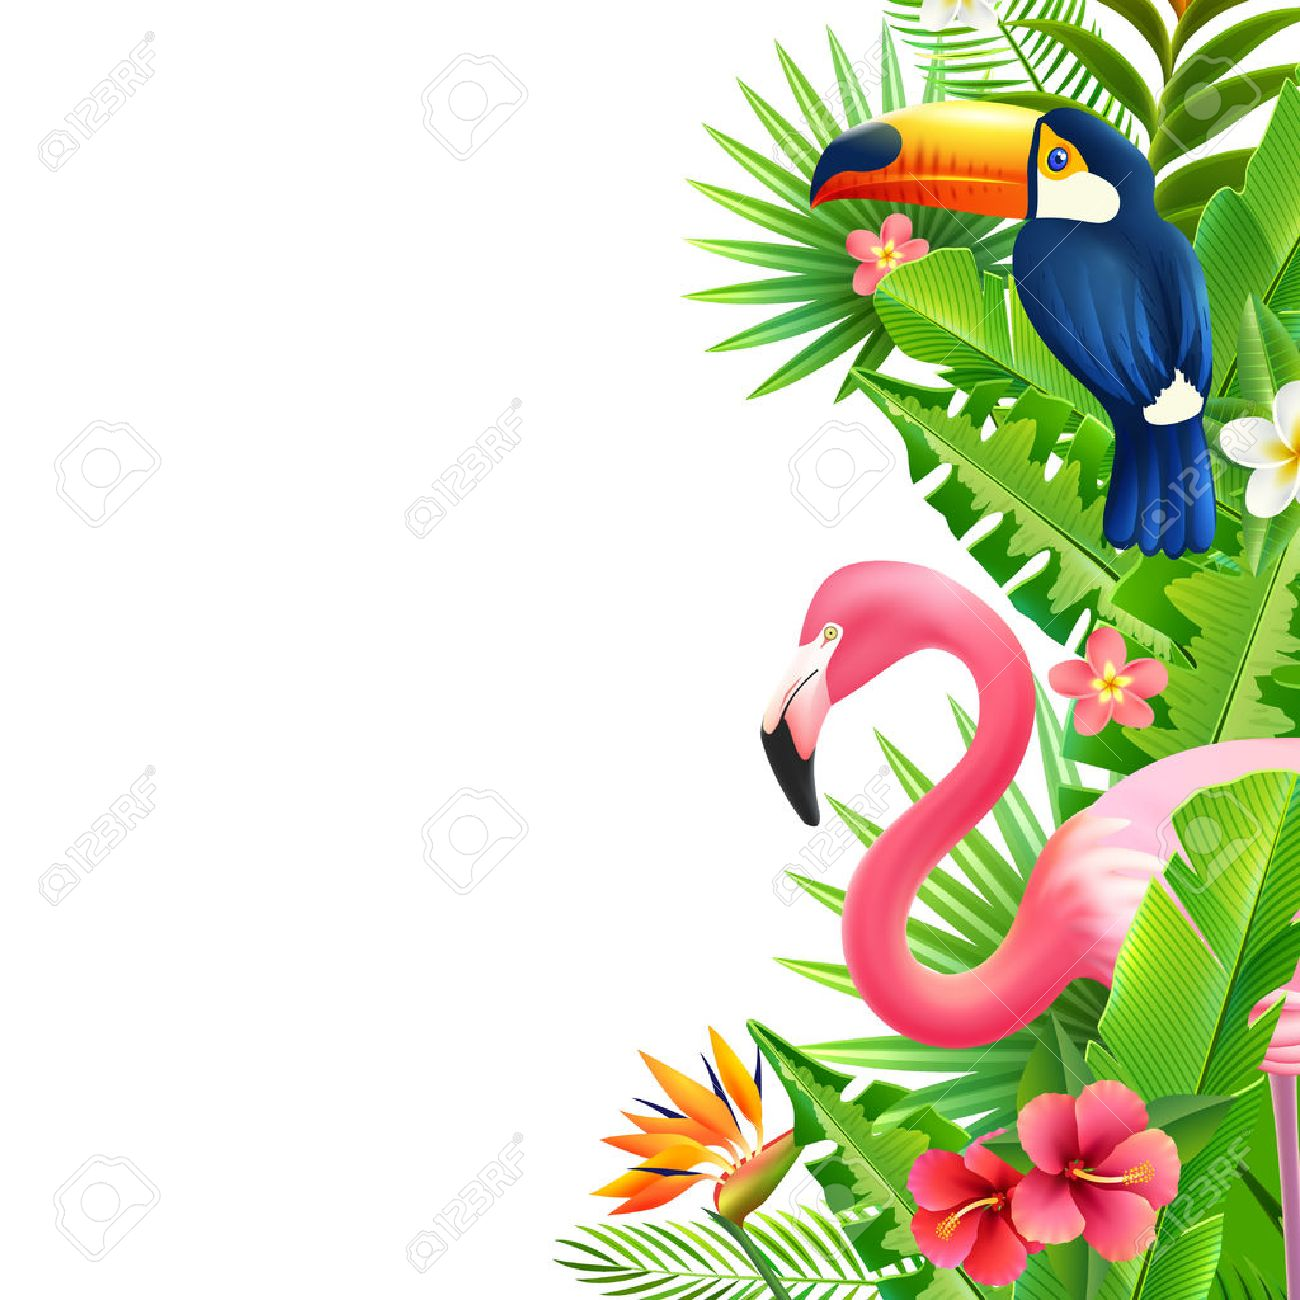 Opulent rainforest foliage vertical border with pink flamingo toucan and bird of paradise flower colorful vector illustration - 56989292